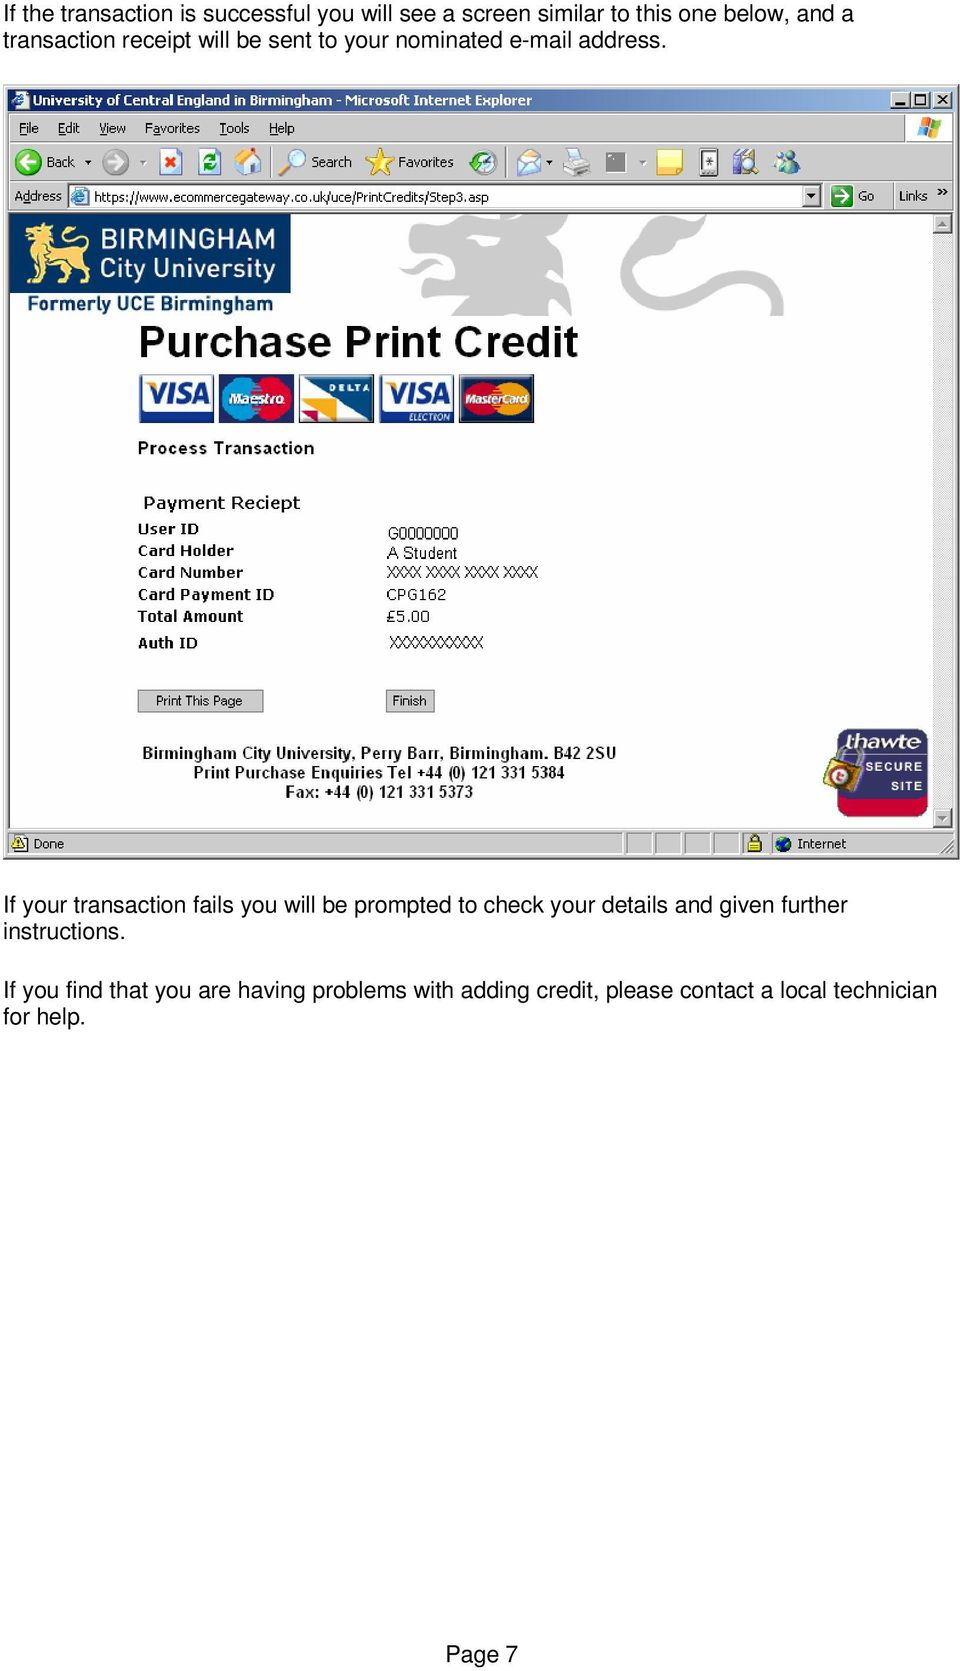 If your transaction fails you will be prompted to check your details and given further